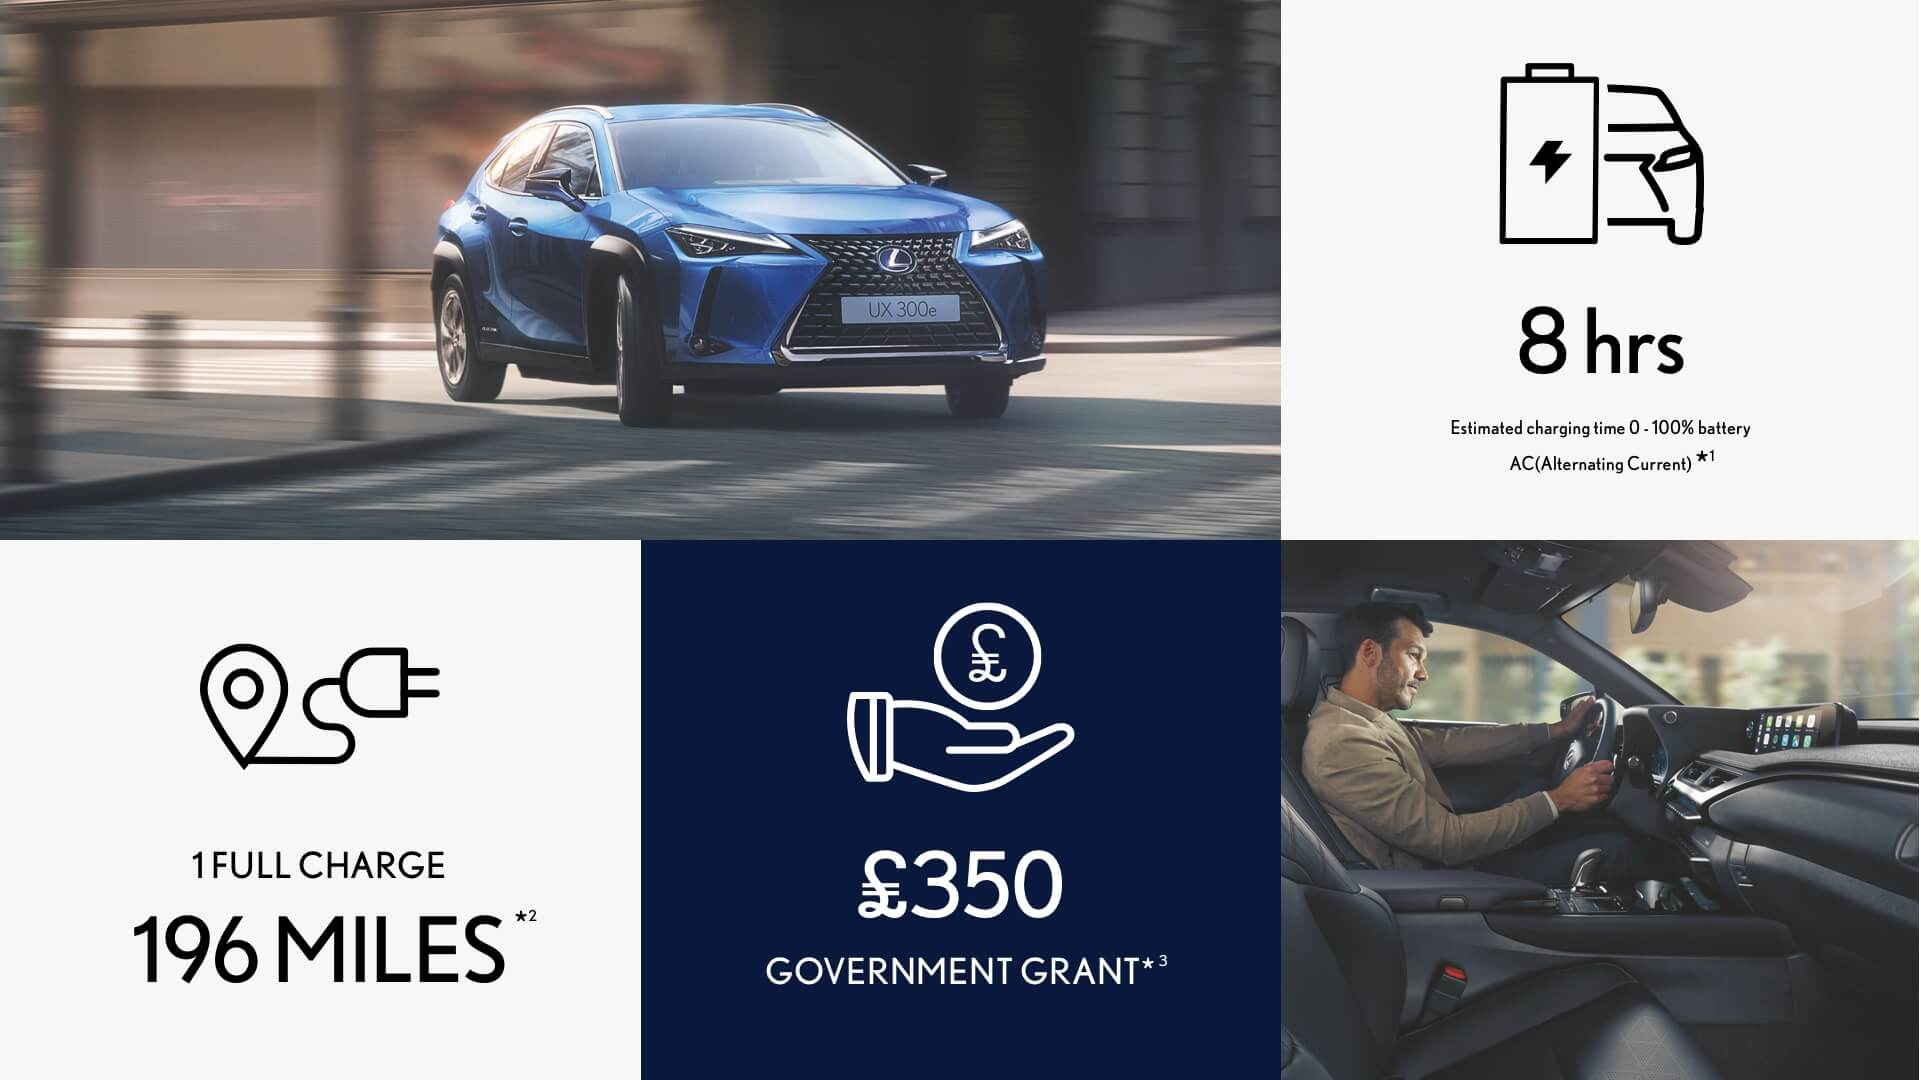 Copy of lexus 2020 home charging infographic